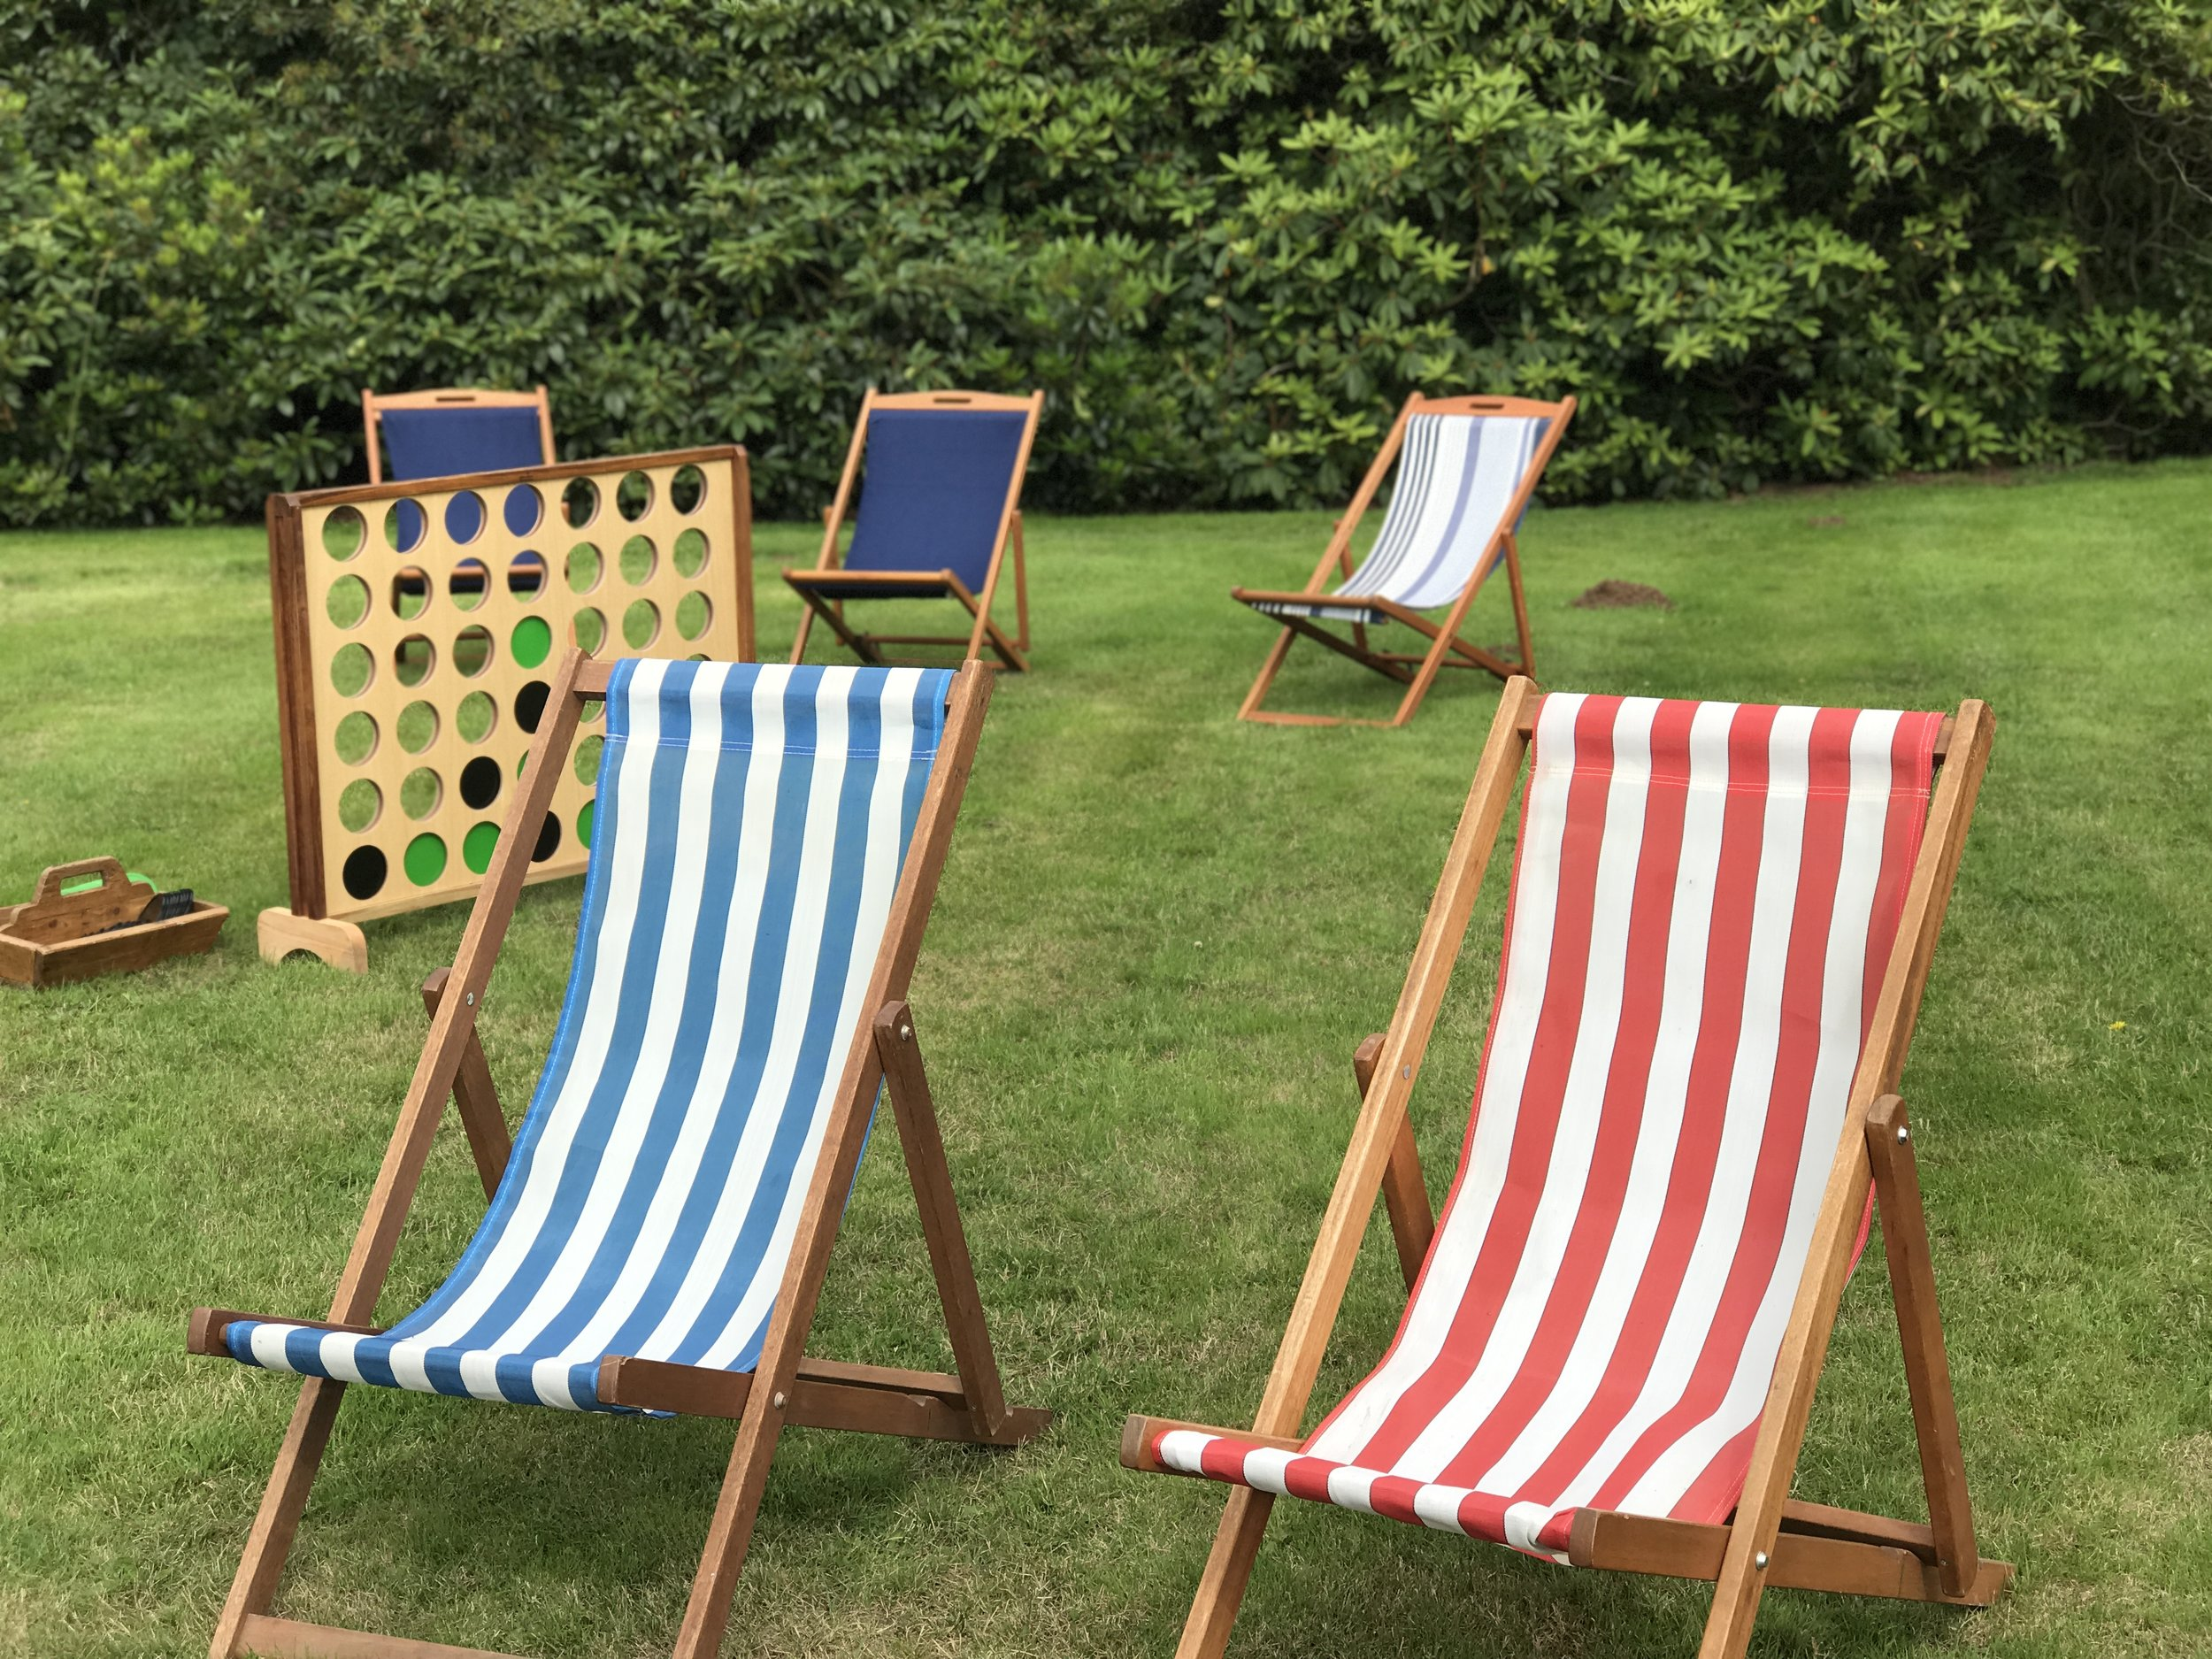 Deckchairs – £5 each (8 available)